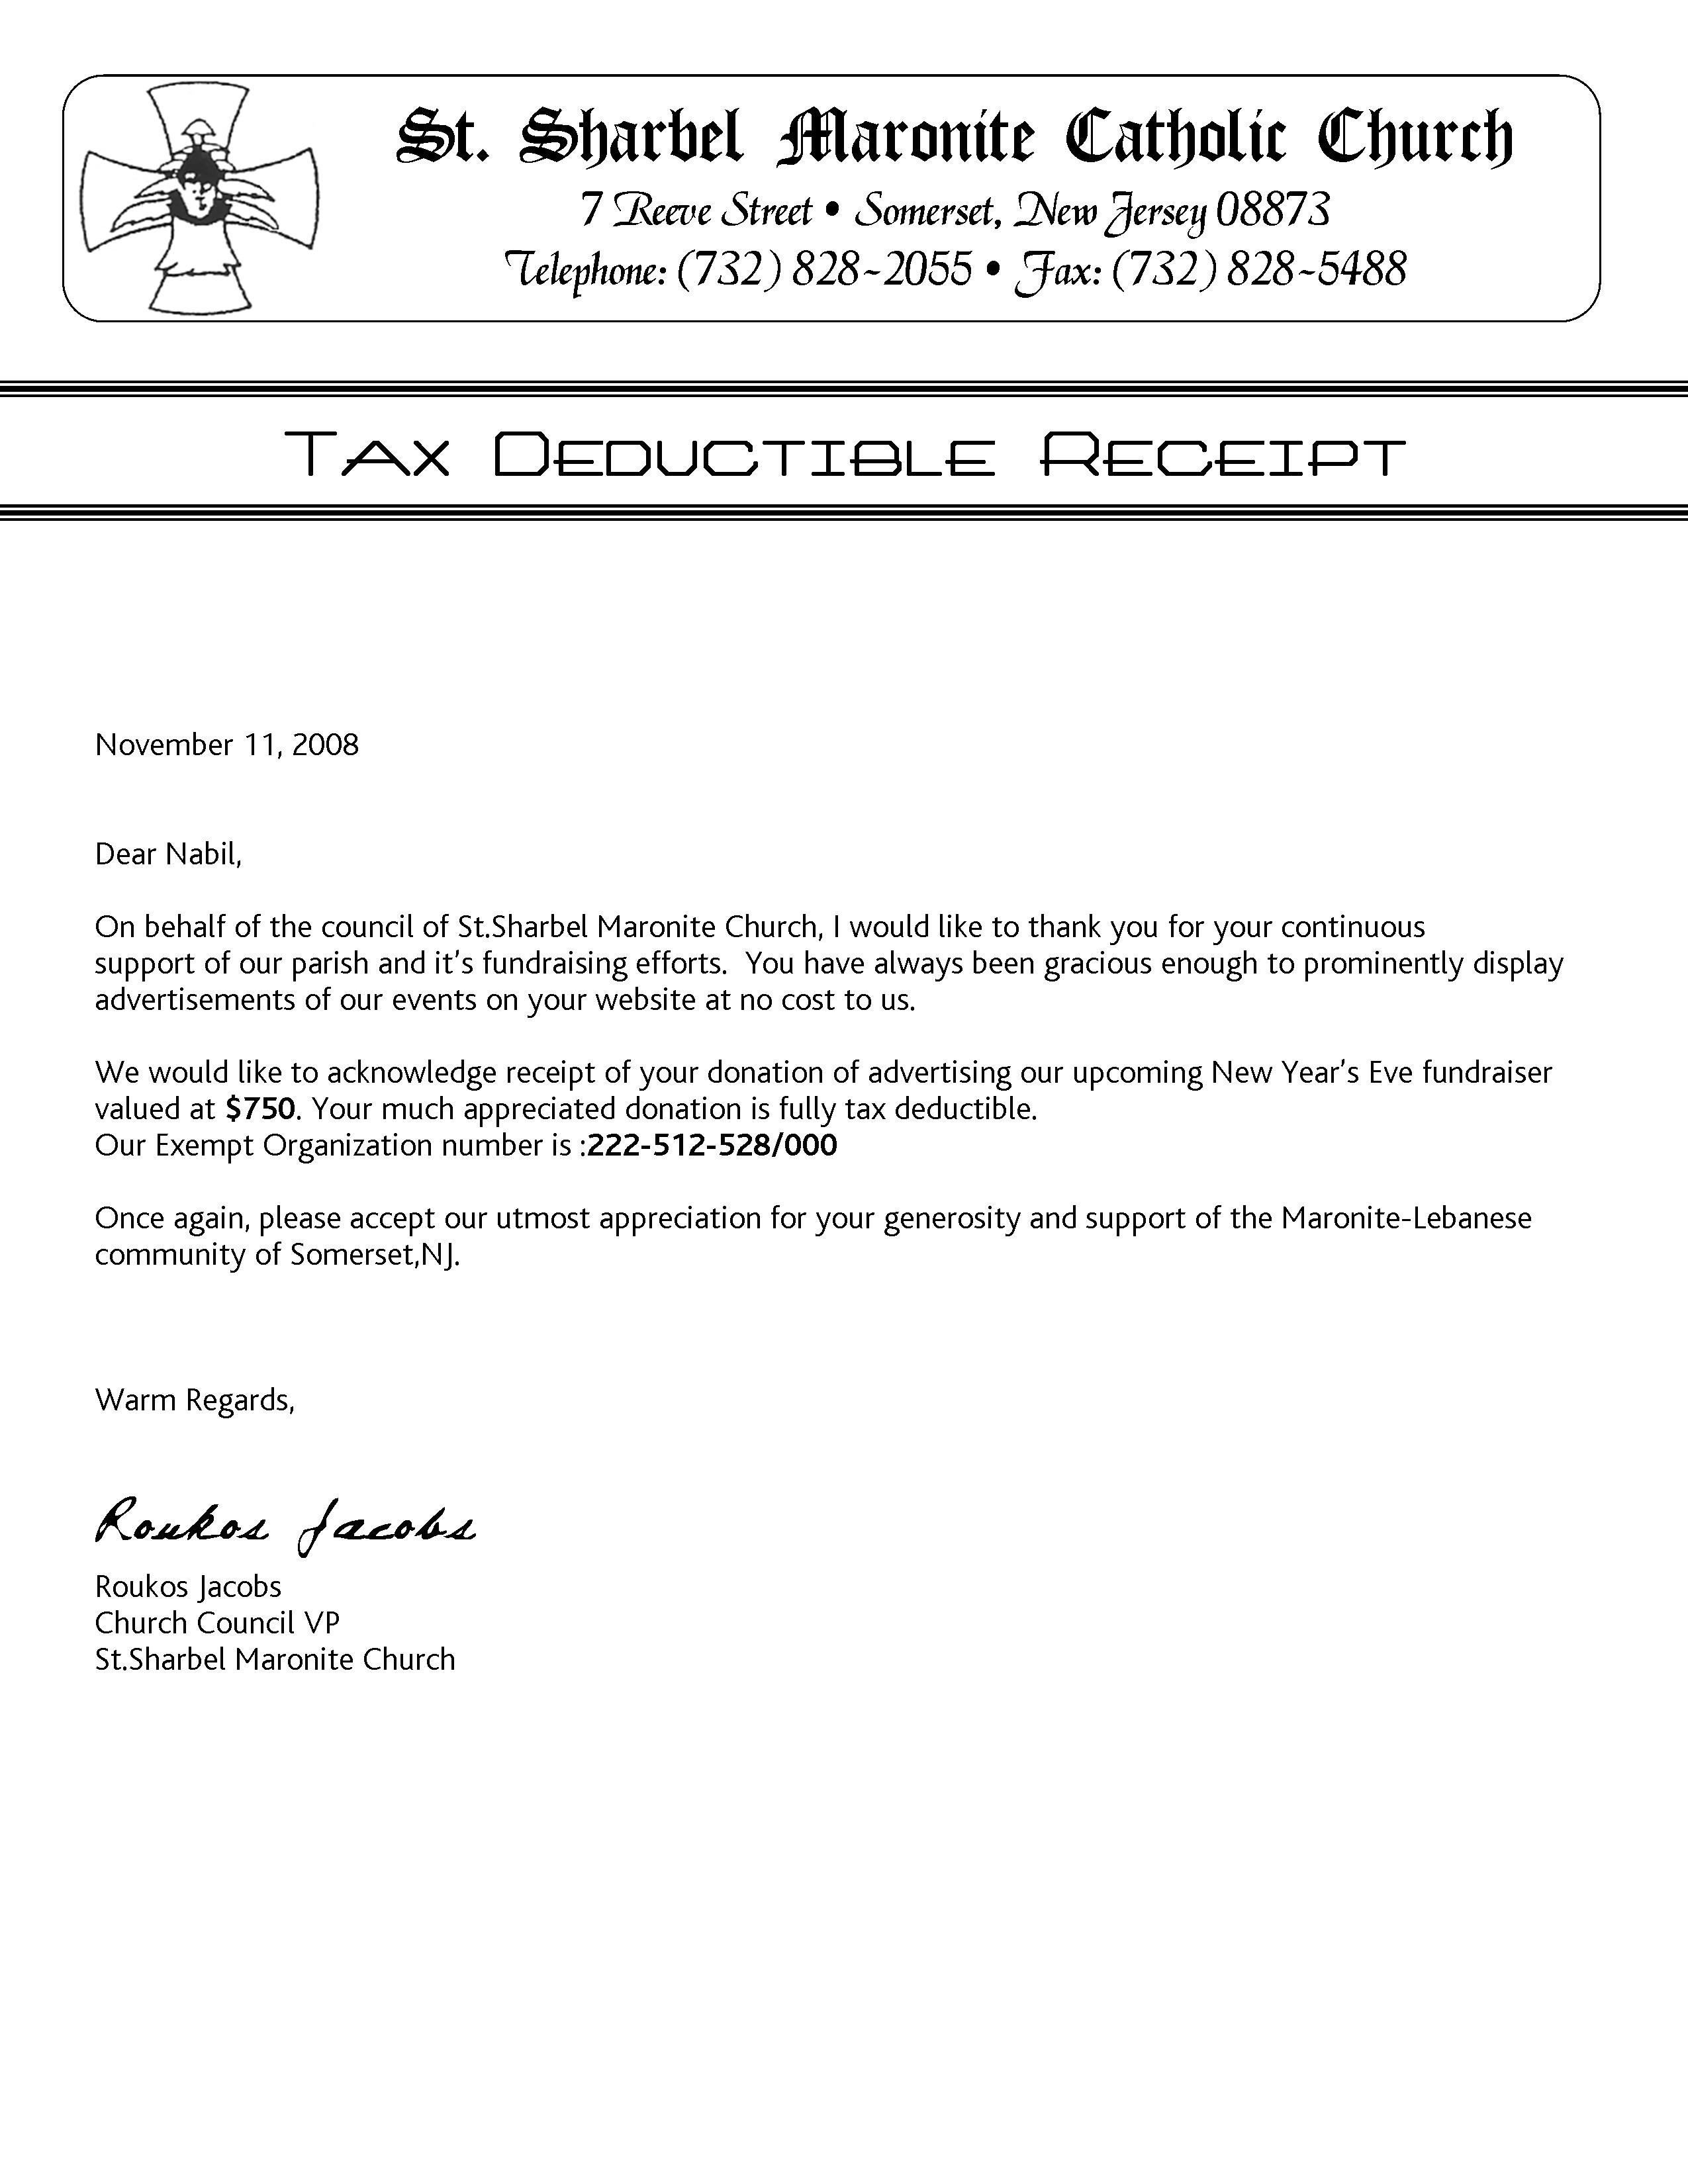 tax deductible donation thank you letter template examples letter